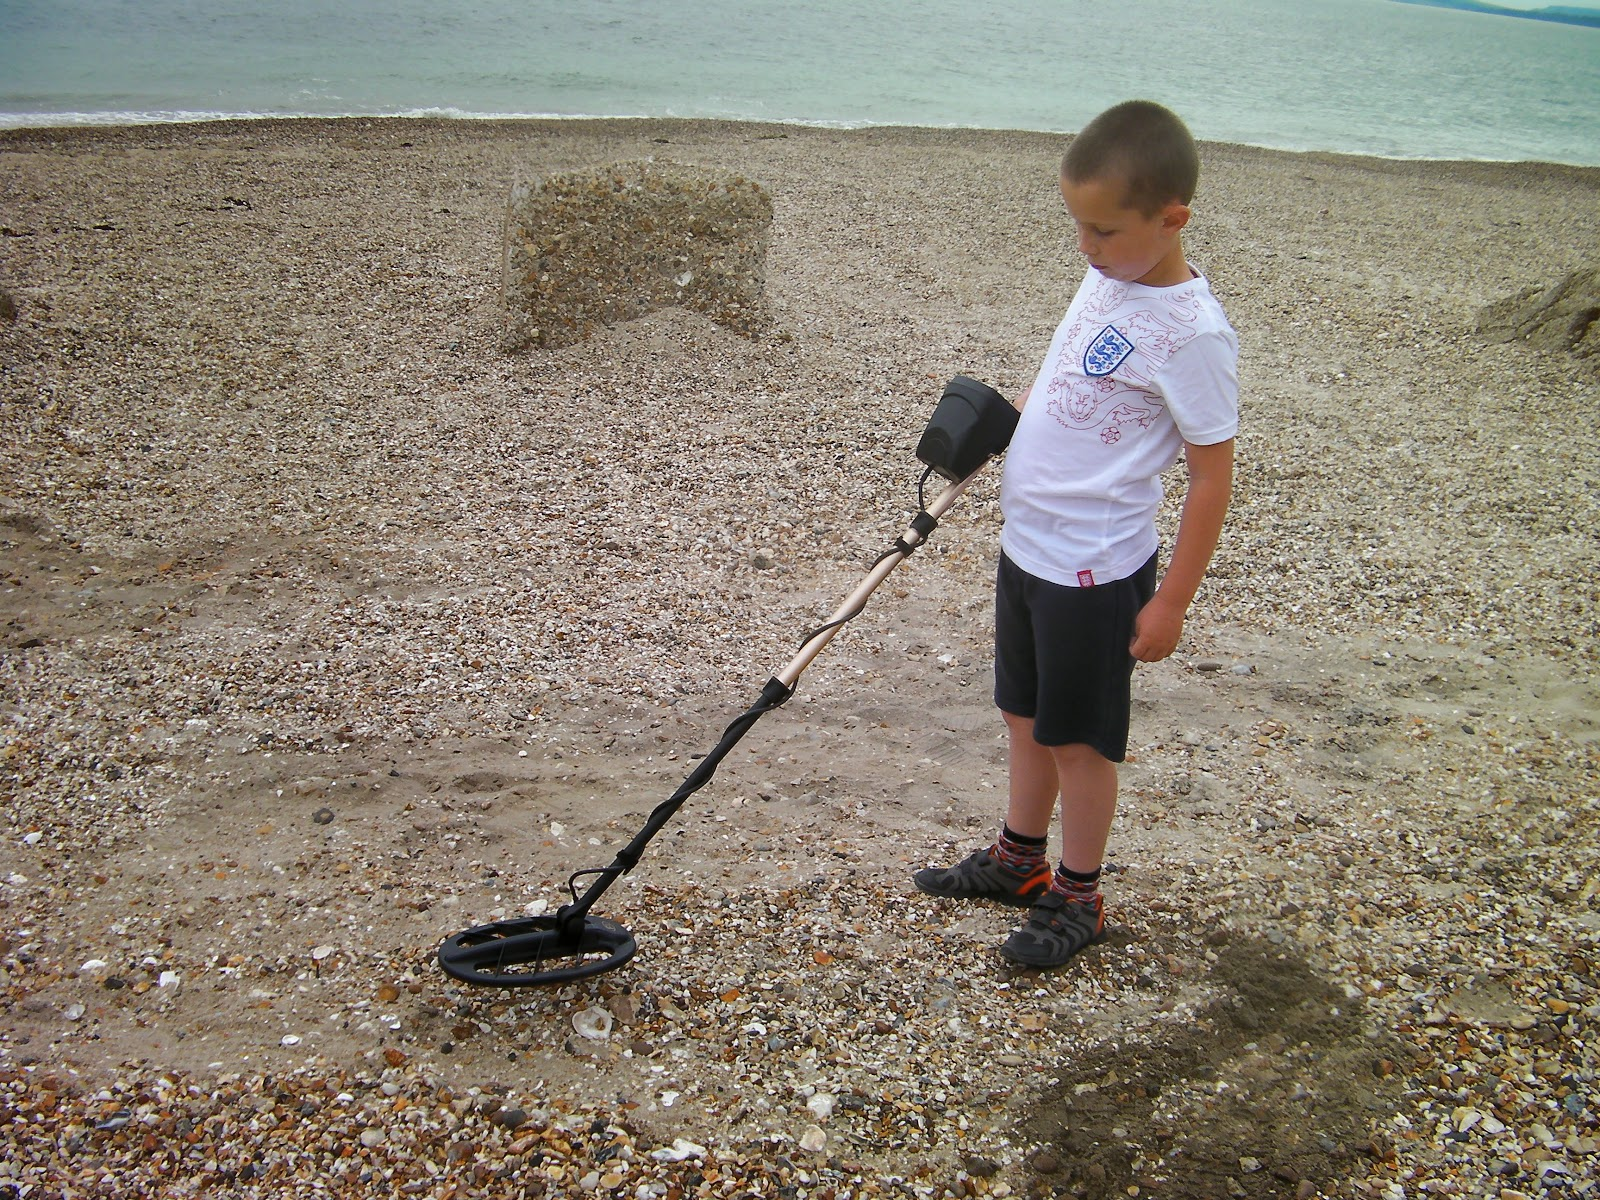 fisher F4 metal detector on shingle beach with world war 2 anti-amphibious tank defence blocks